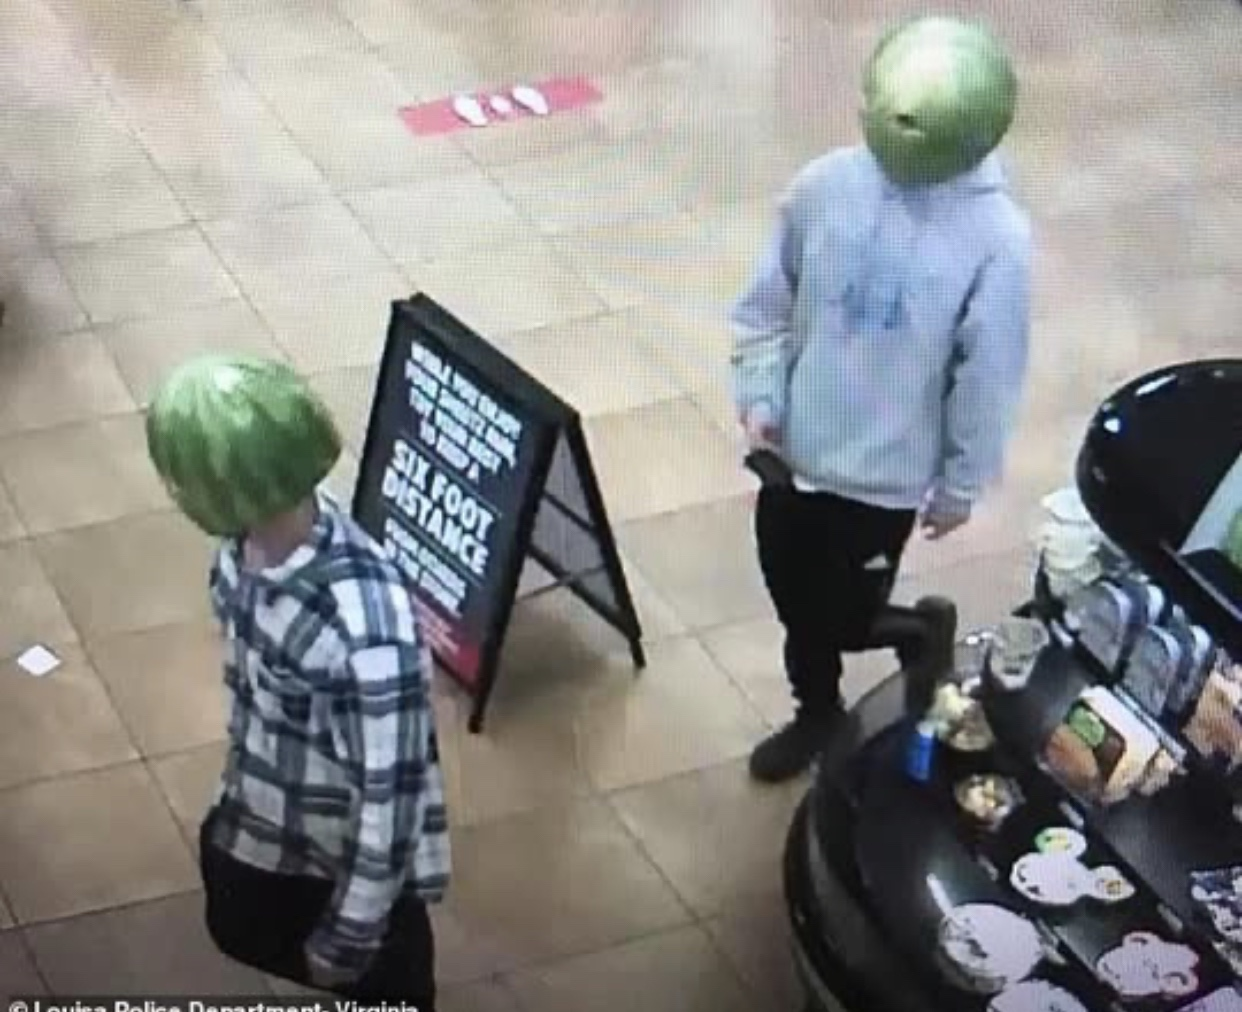 What are aliens doing robbing liquor stores!?